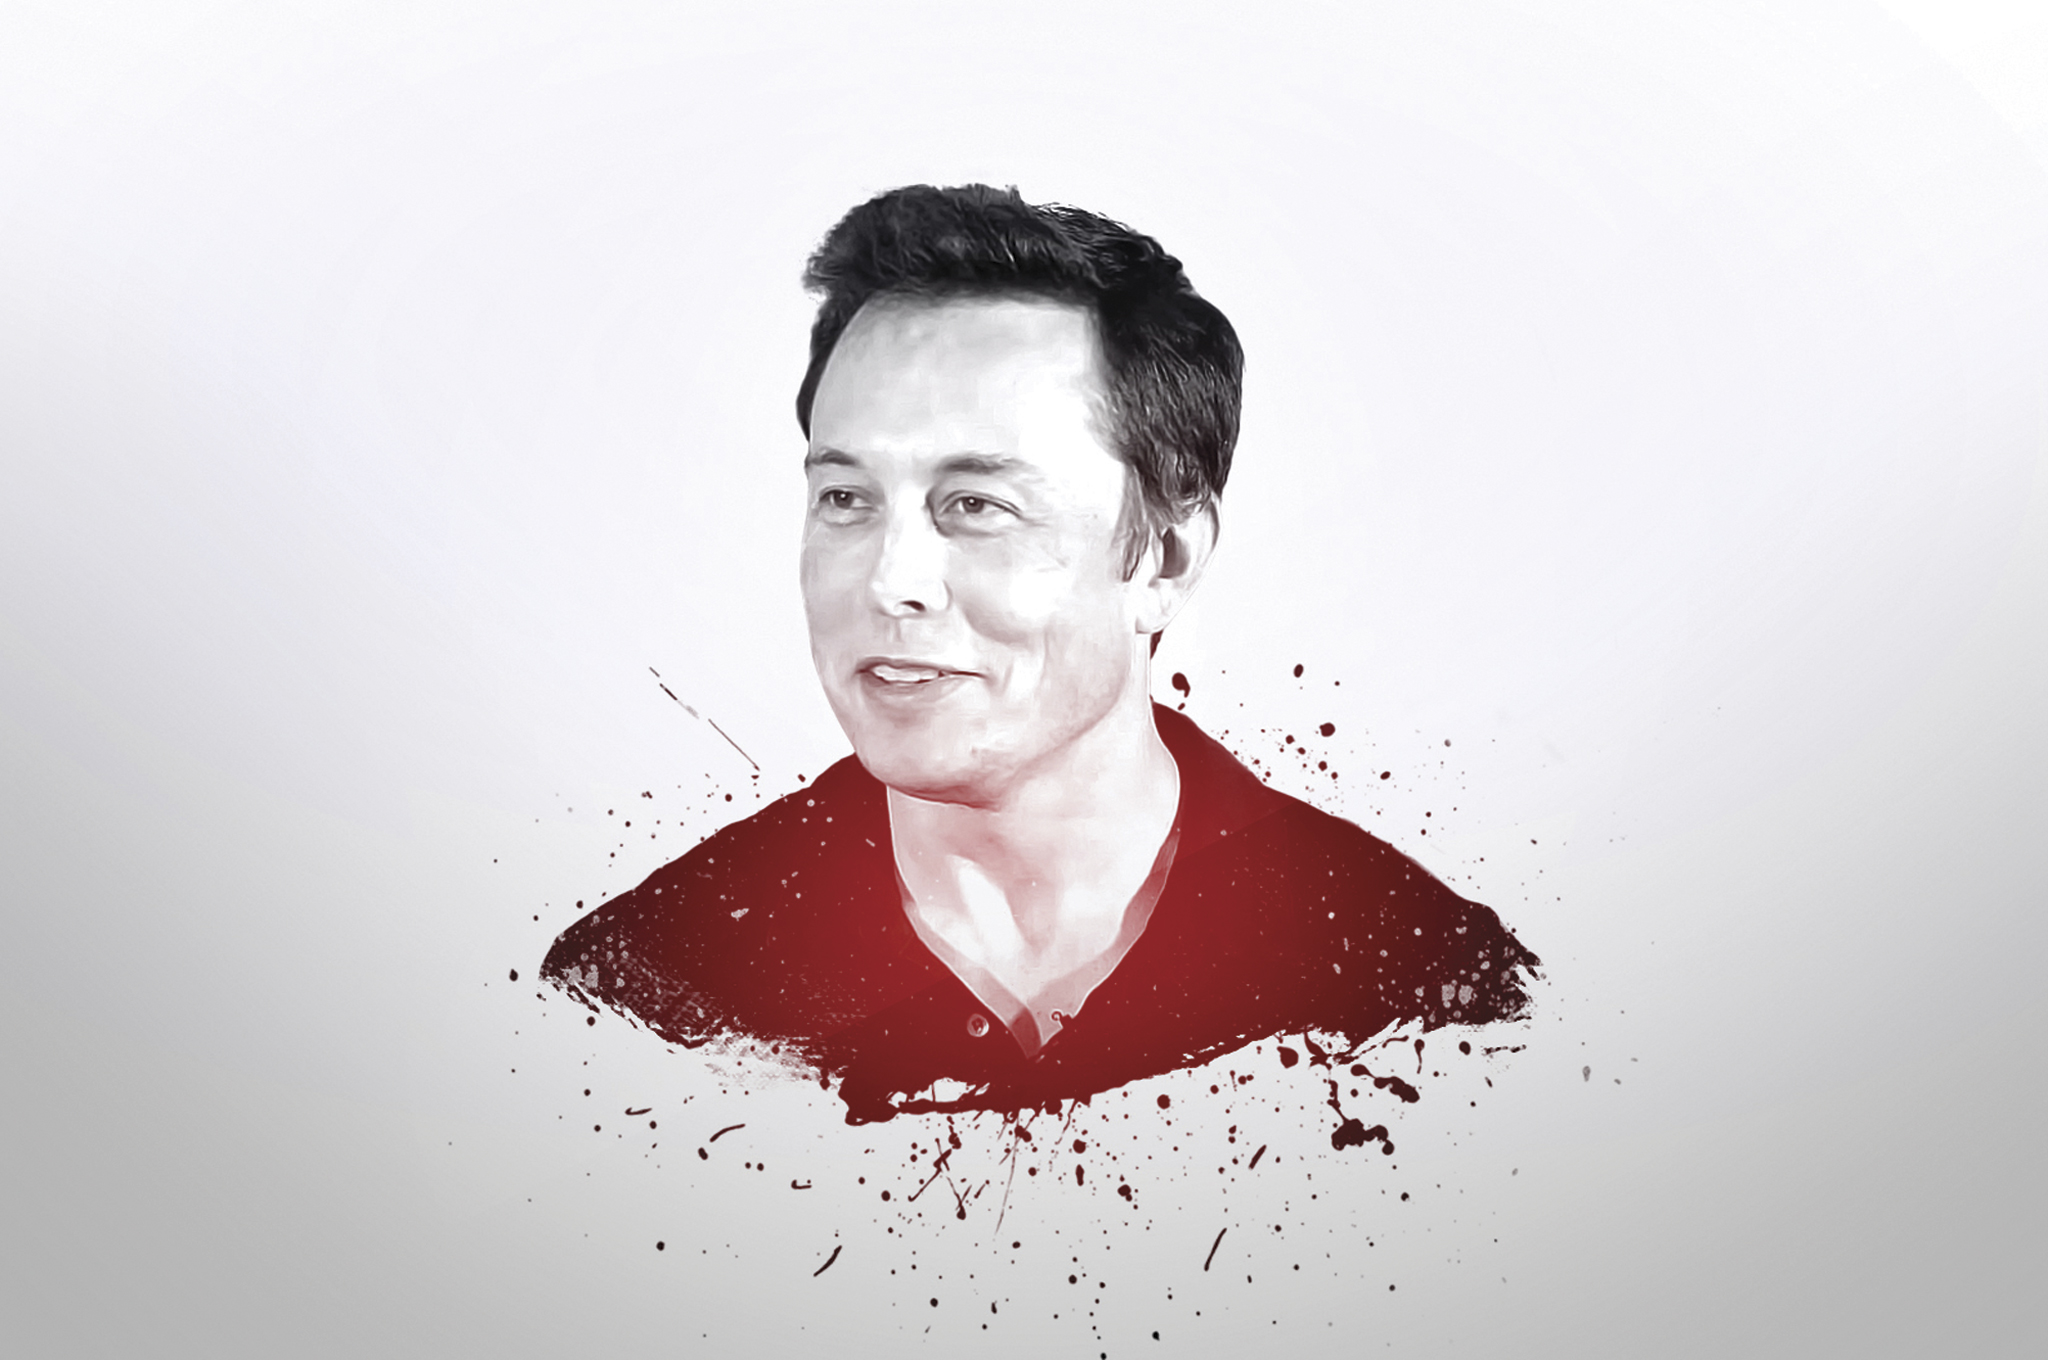 2048x1360 Elon Musk Wallpapers High Quality   Download Free